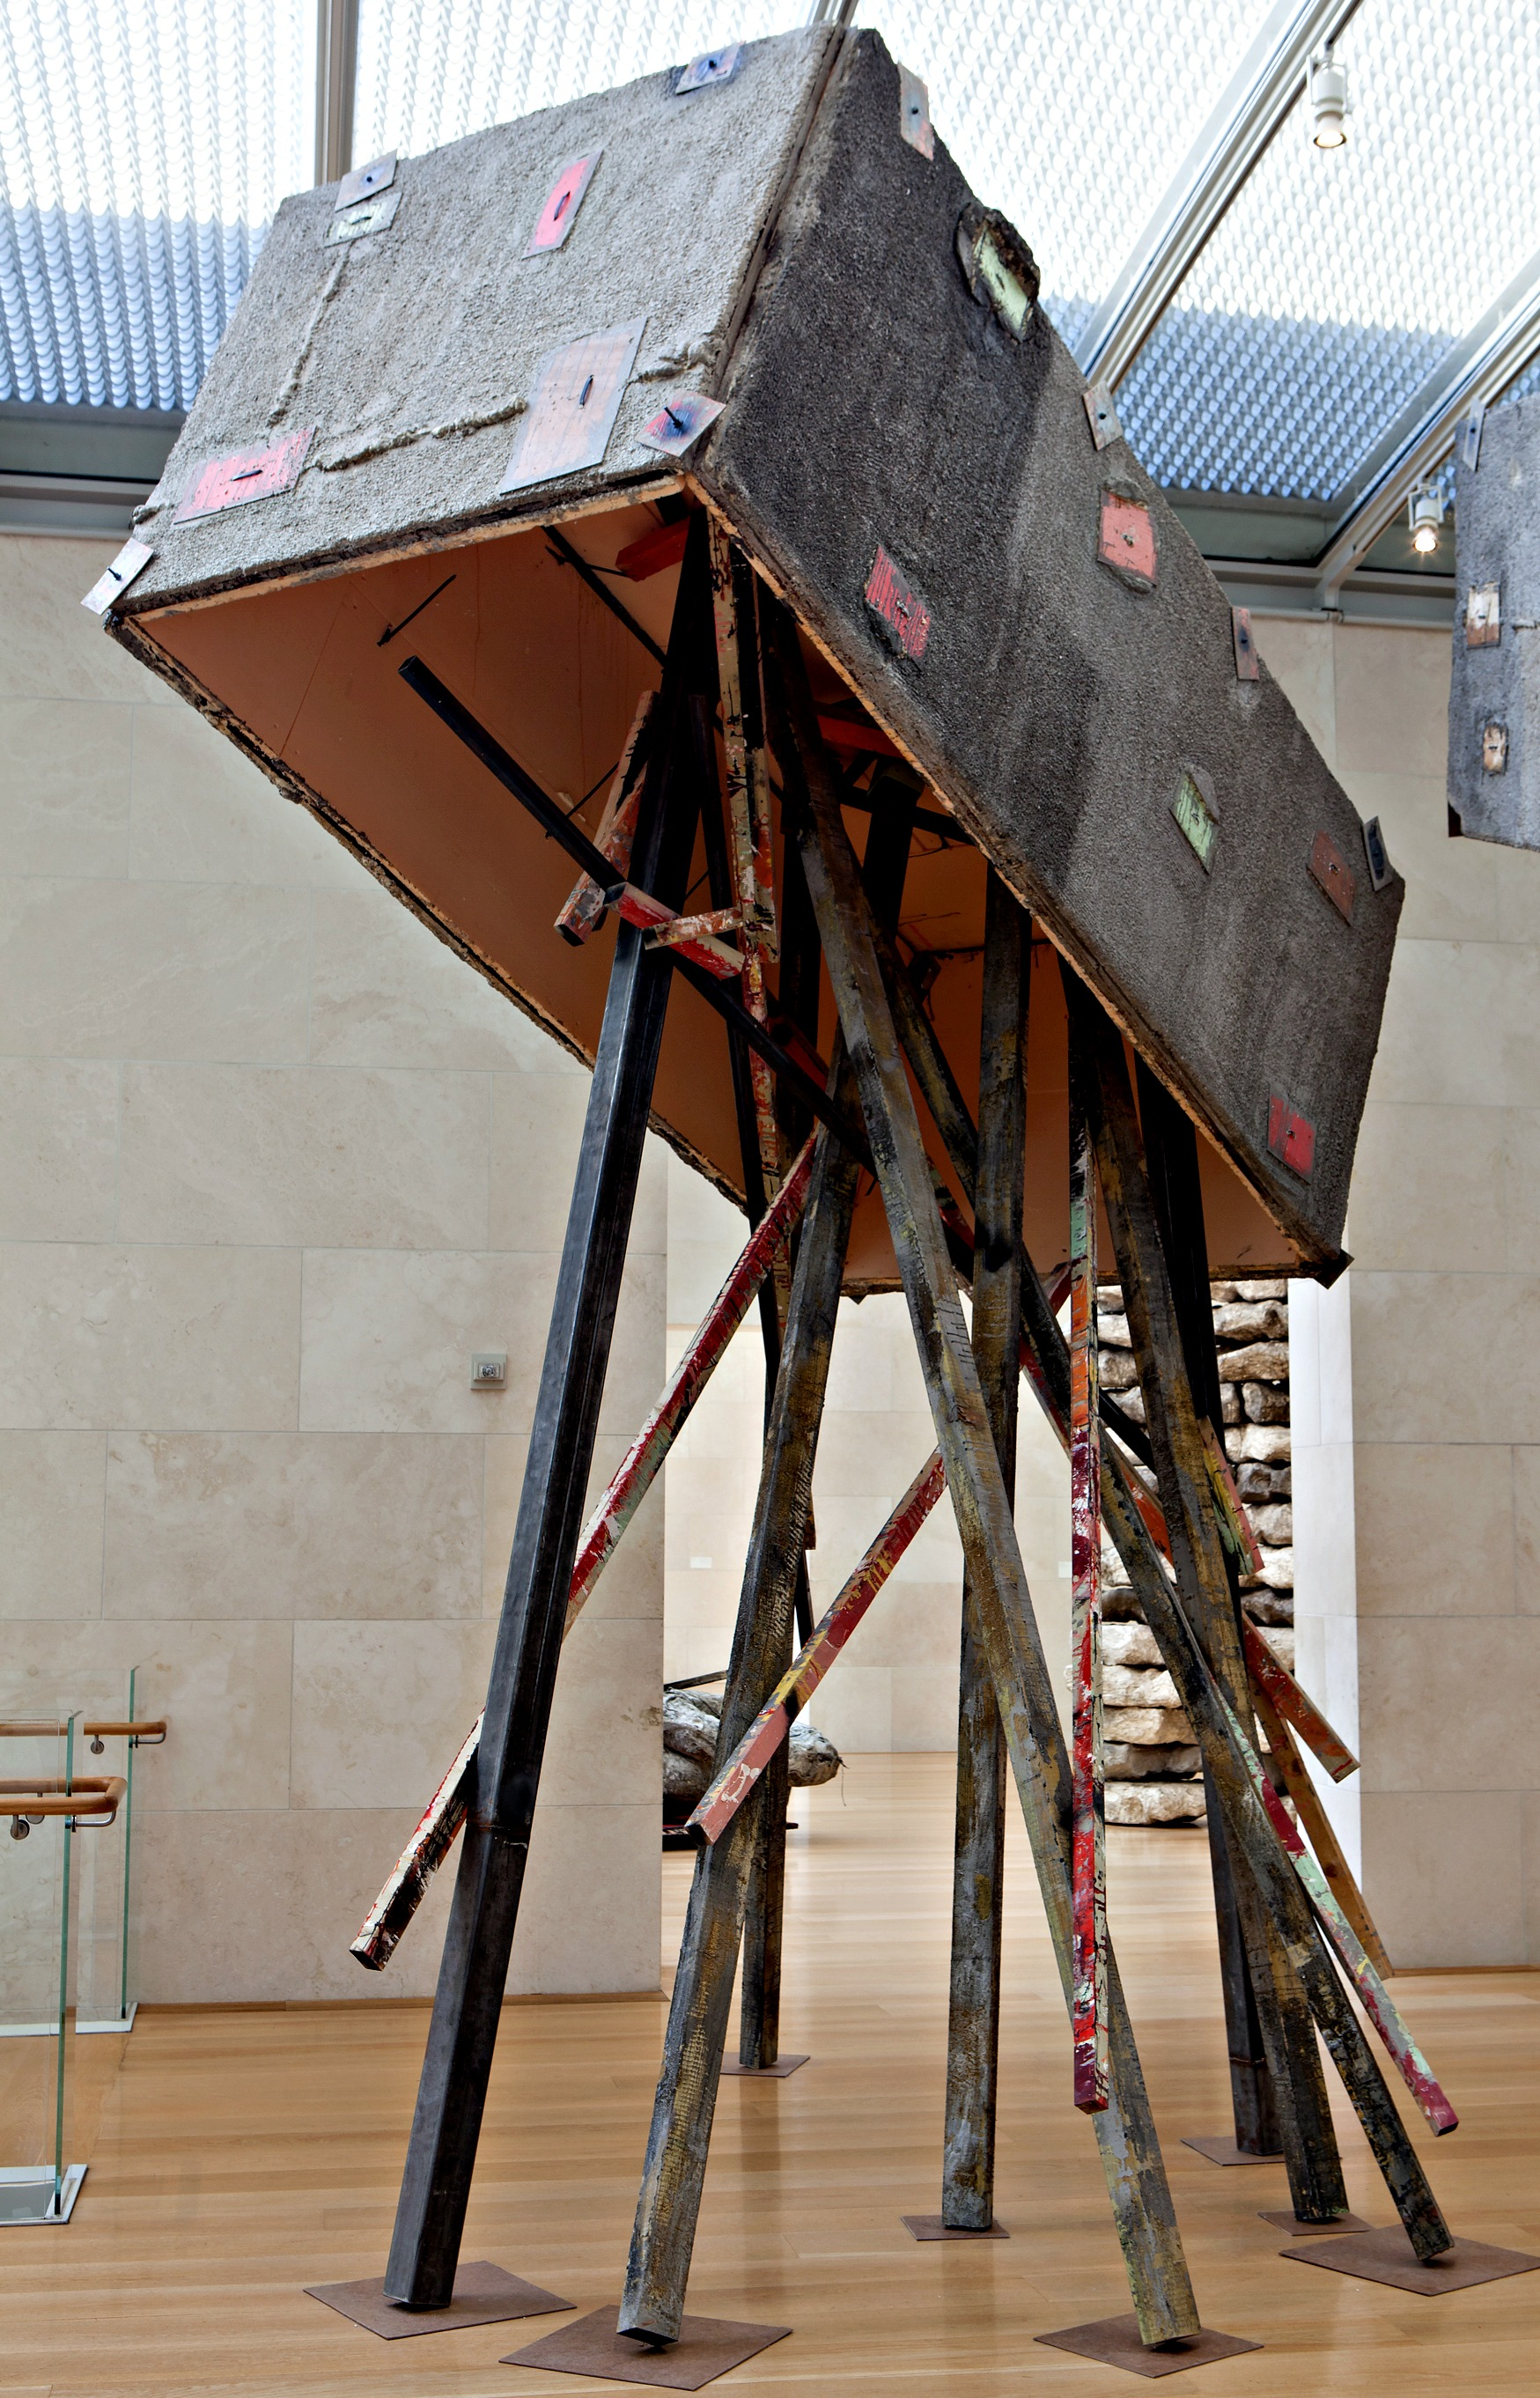 Universities In Dallas Texas >> Trysting with Phyllida Barlow at the Nasher | Art&Seek | Arts, Music, Culture for North Texas